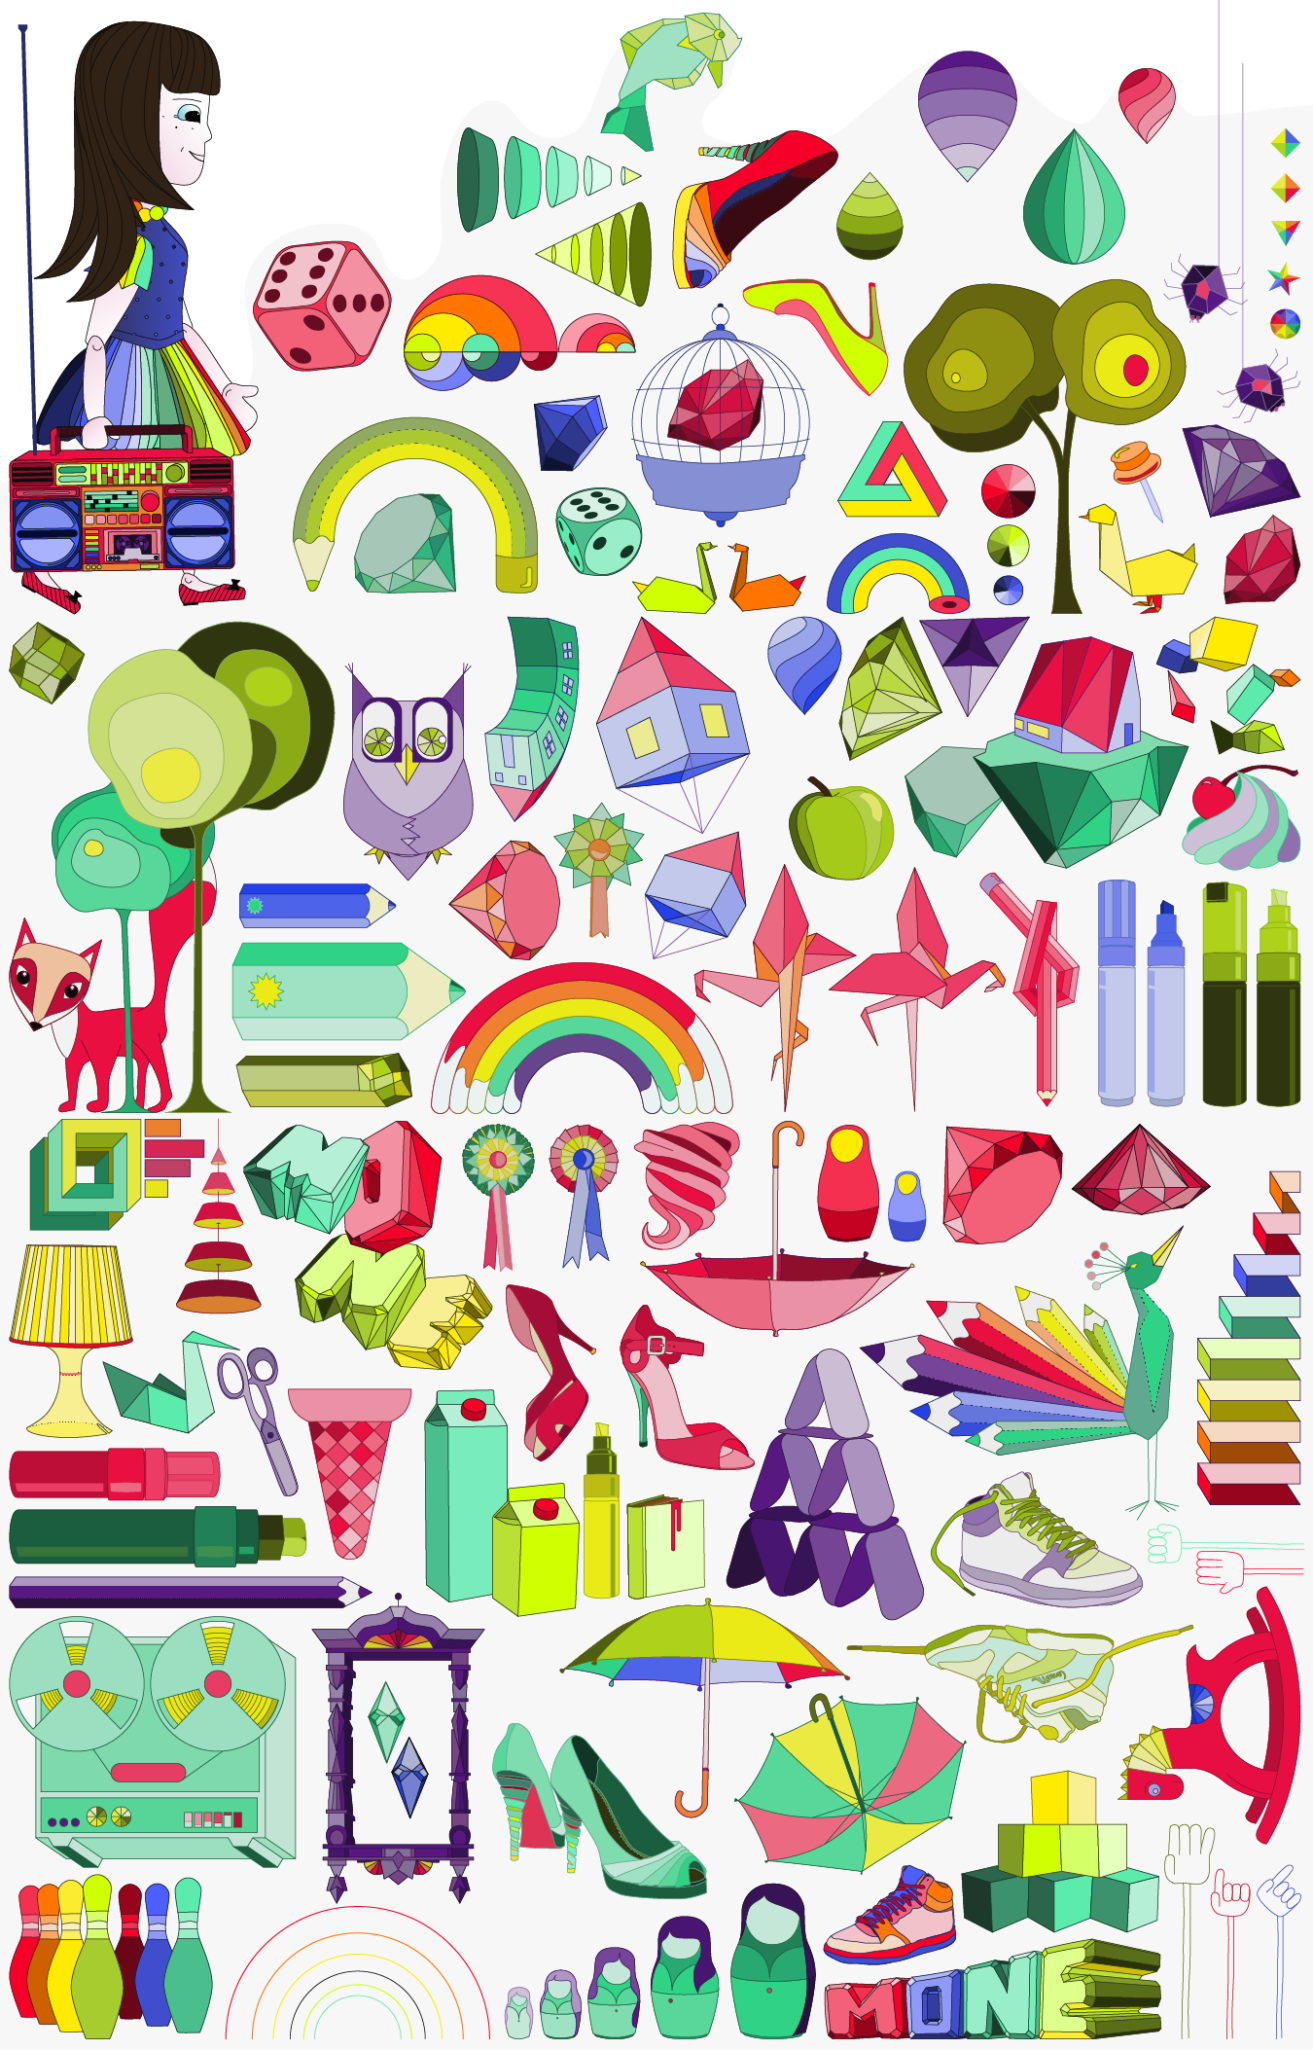 Illustrated things